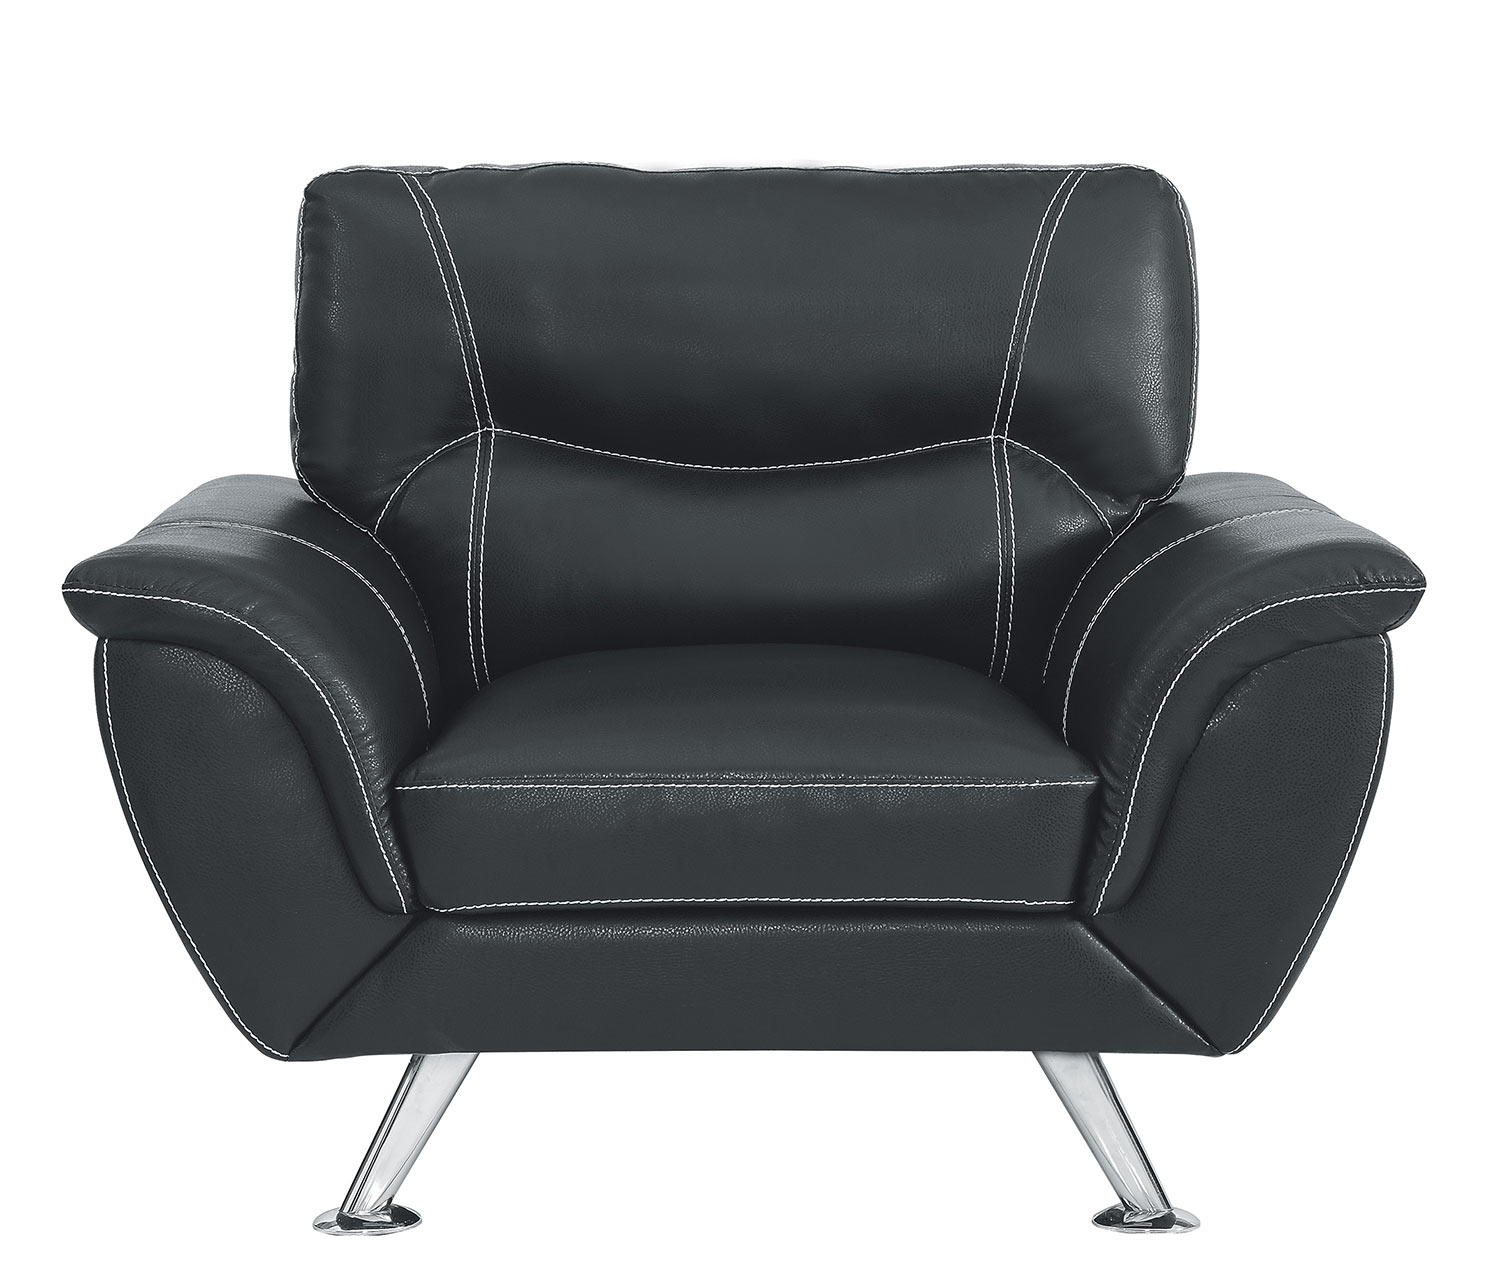 Homelegance Jambul Chair - Black